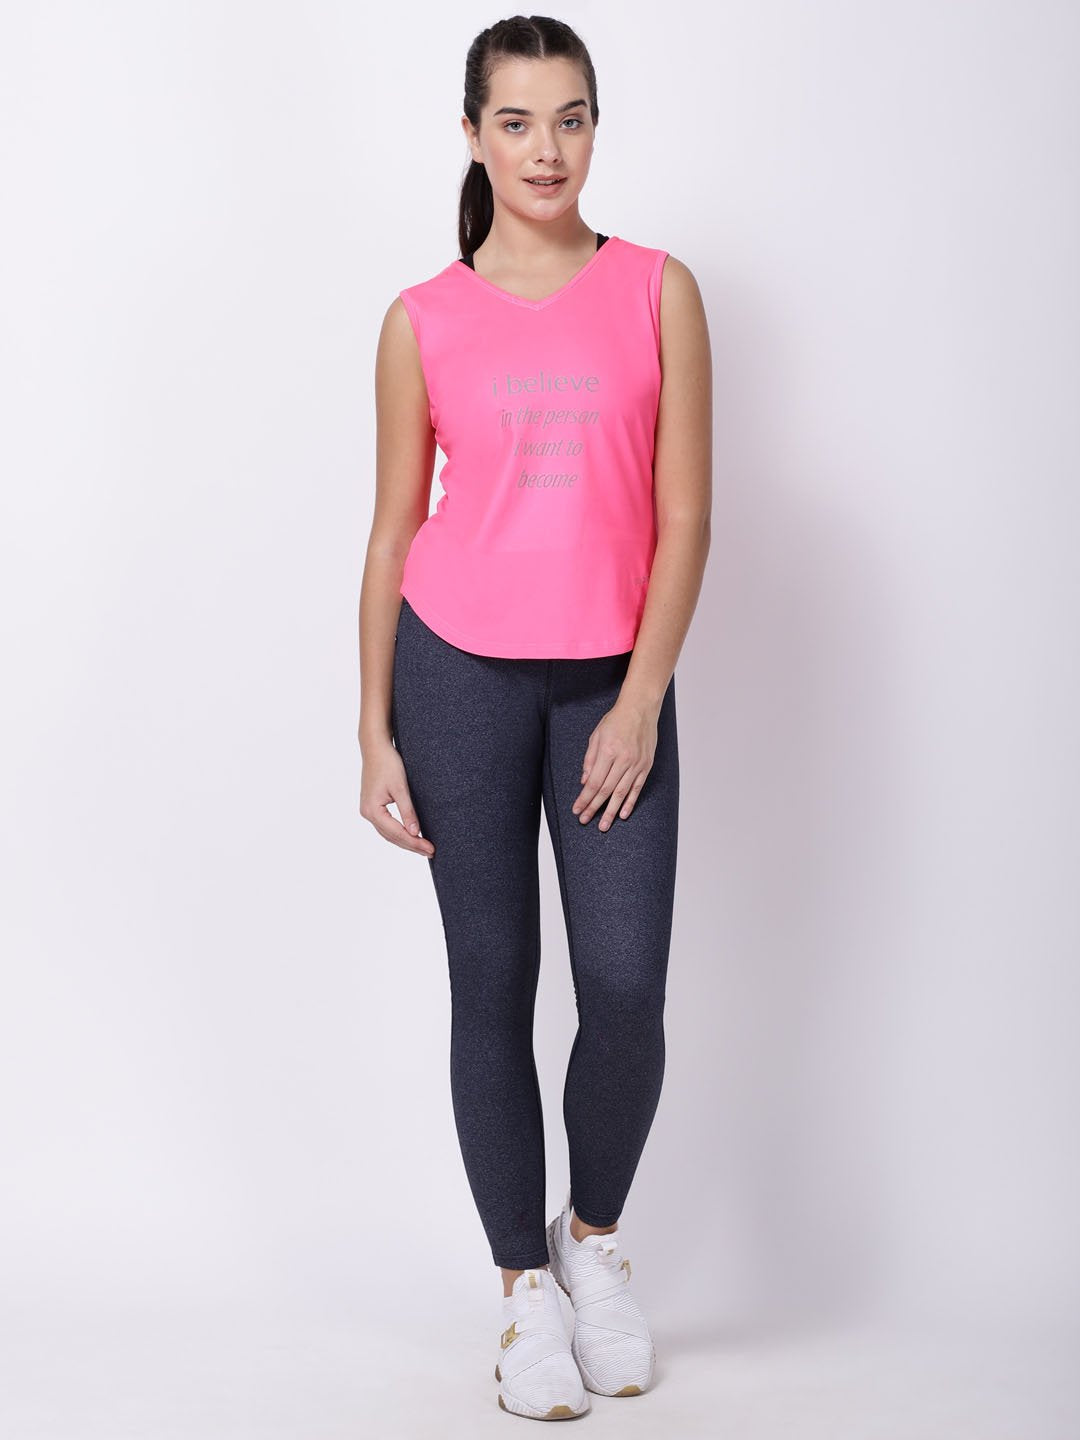 Neo-Pink Sleeveless Graceful Lady Tee